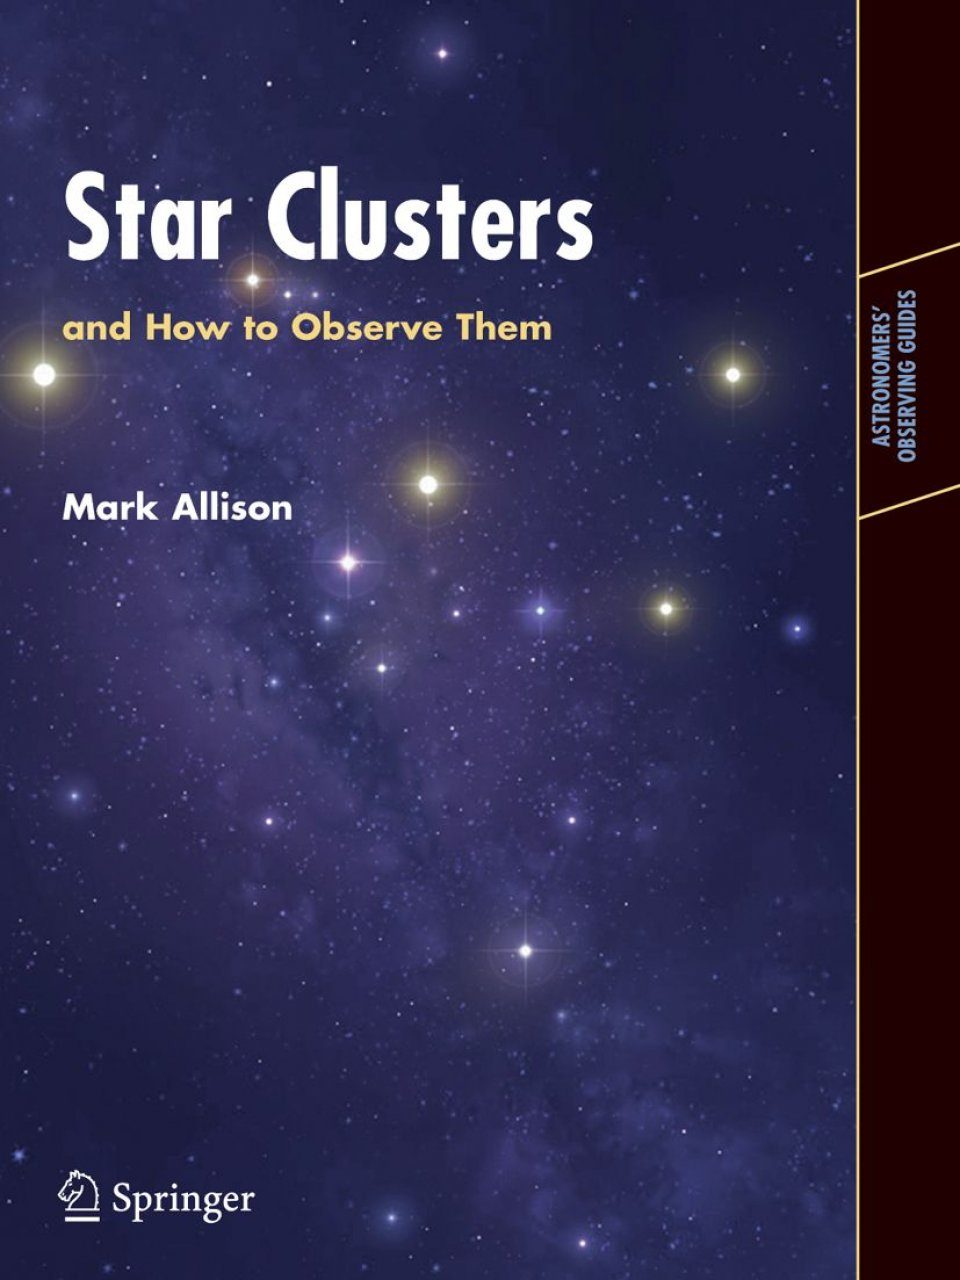 Star Clusters and How to Observe Them